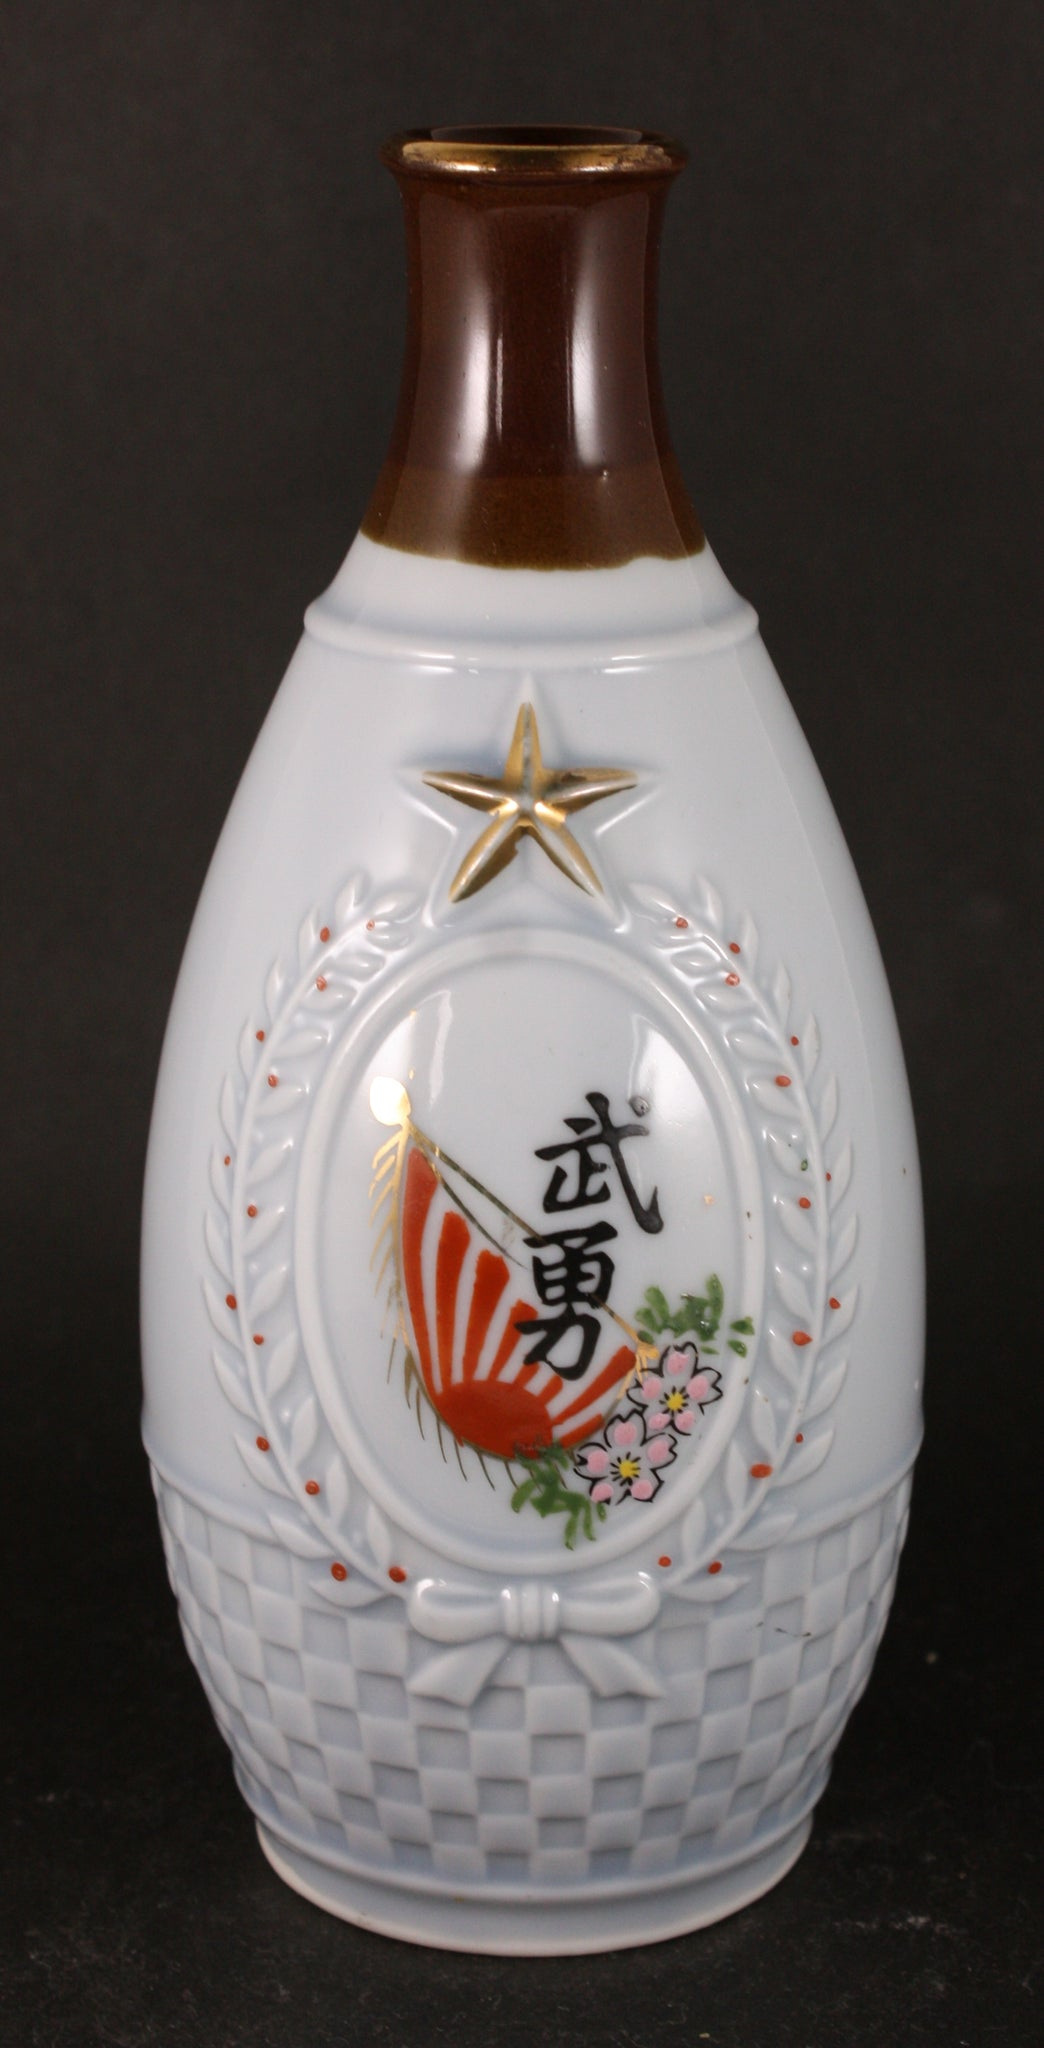 Antique Japanese Military Embossed Wreath Loyalty Bravery Army Sake Bottle